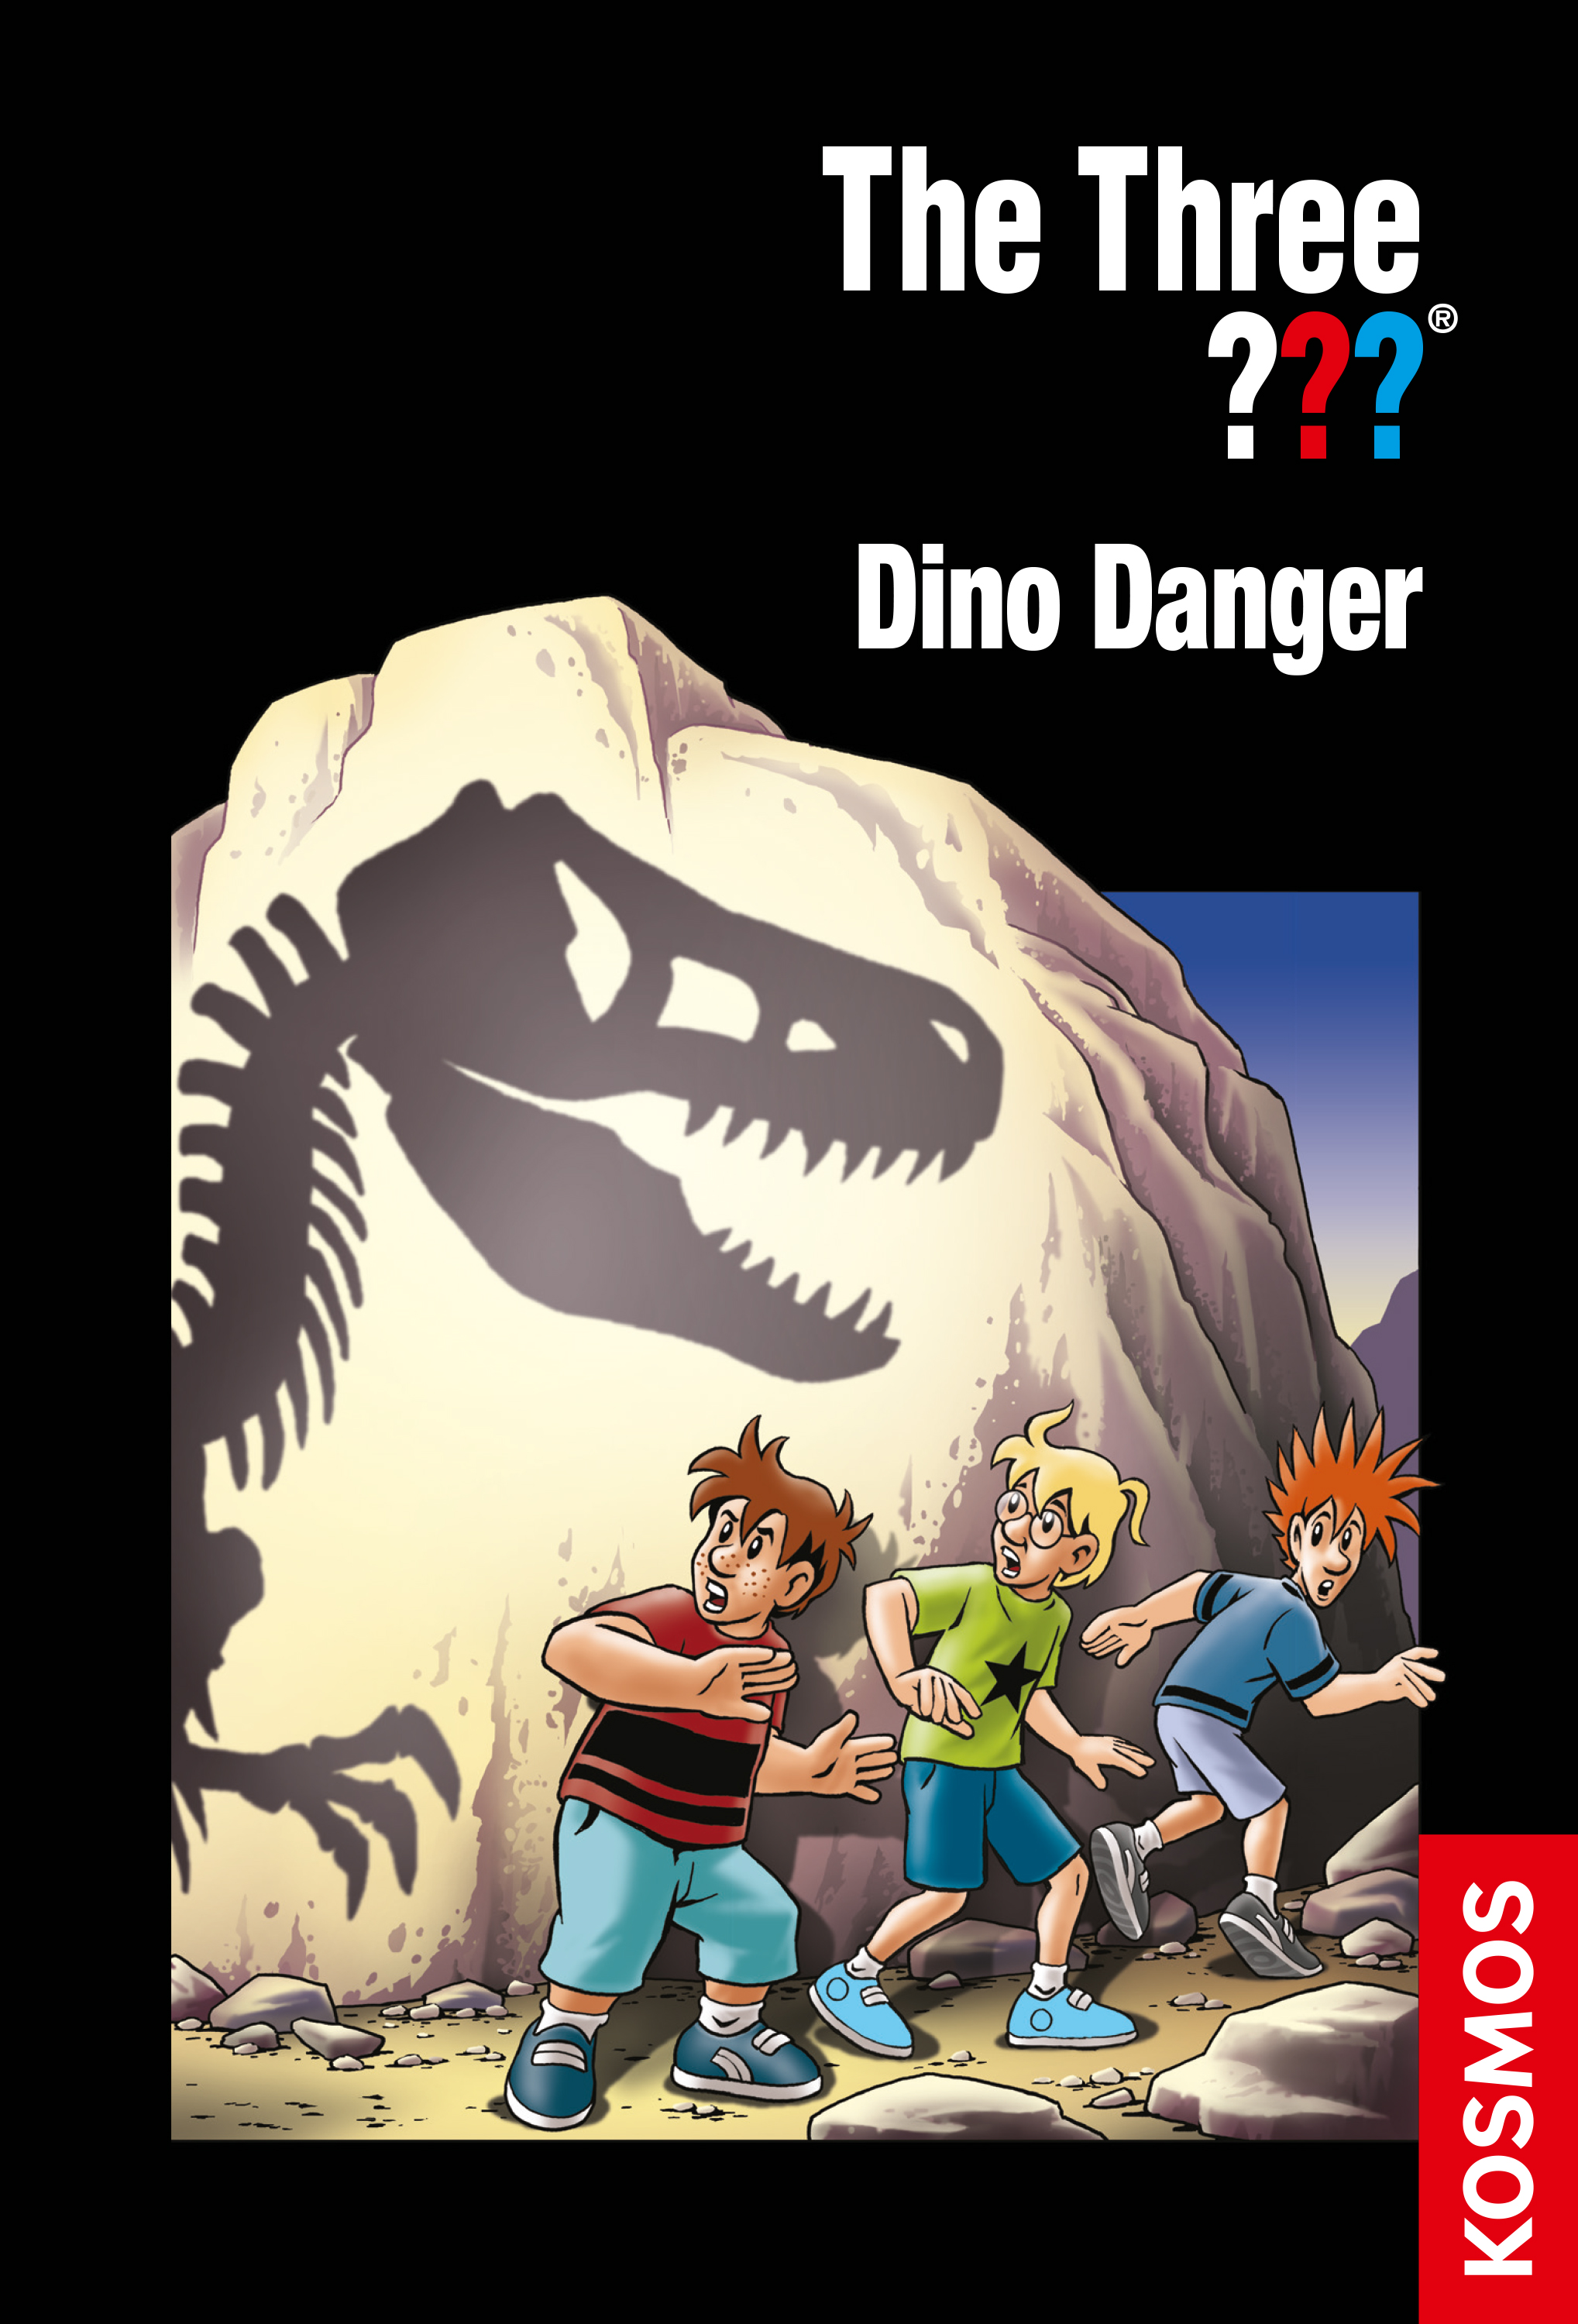 Die drei ??? Kids - The Three ???, Dino Danger